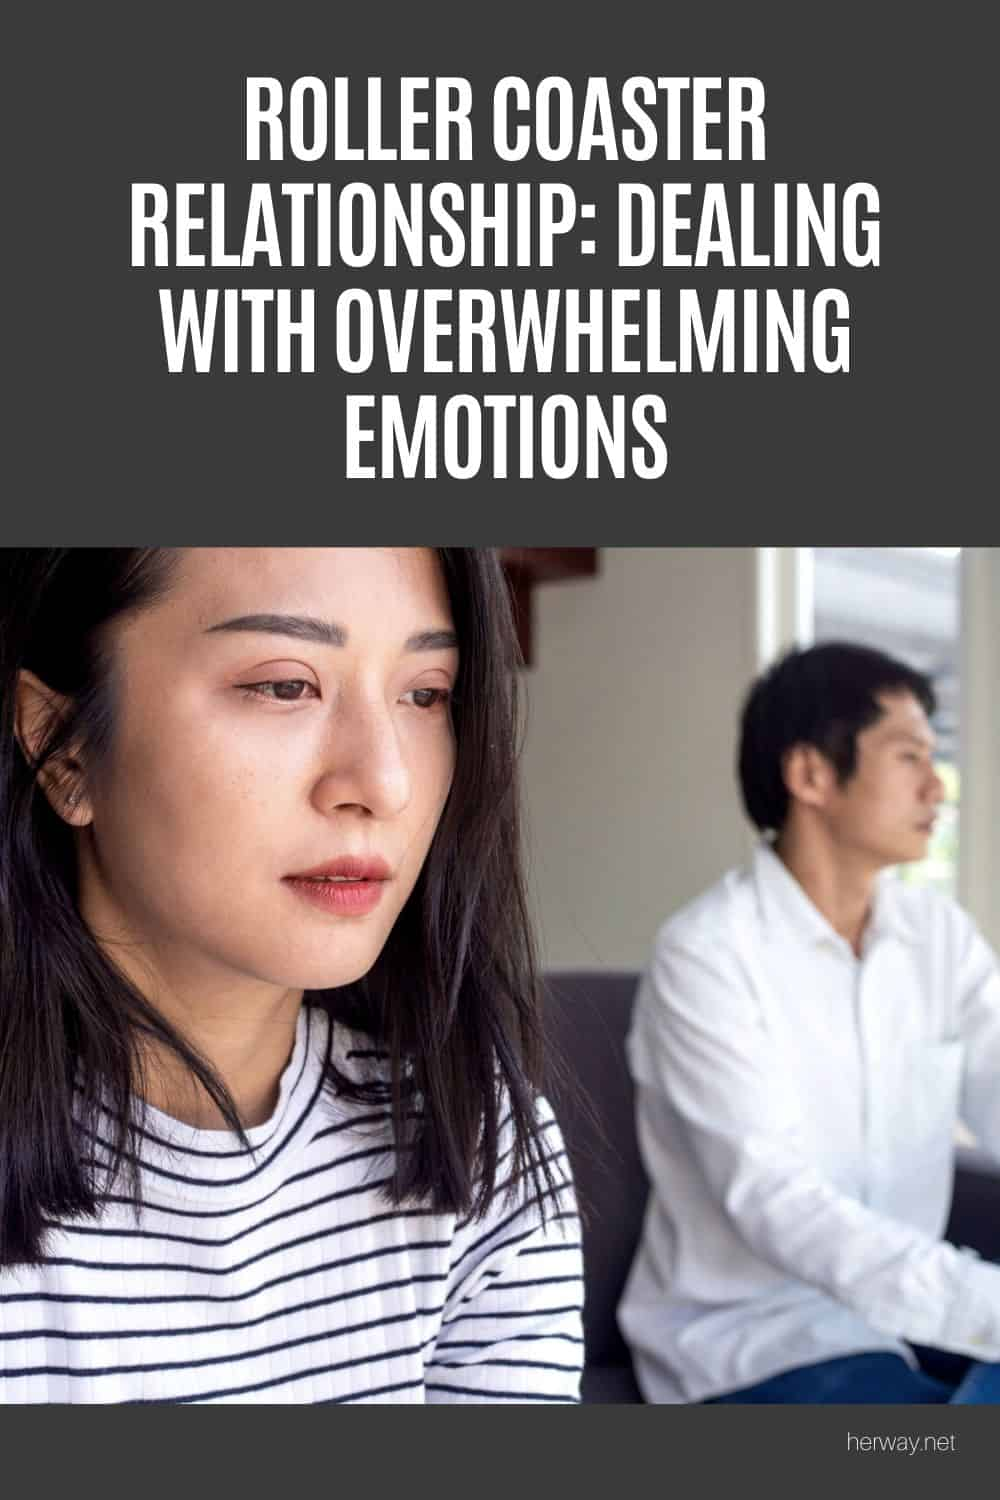 Roller Coaster Relationship: Dealing With Overwhelming Emotions